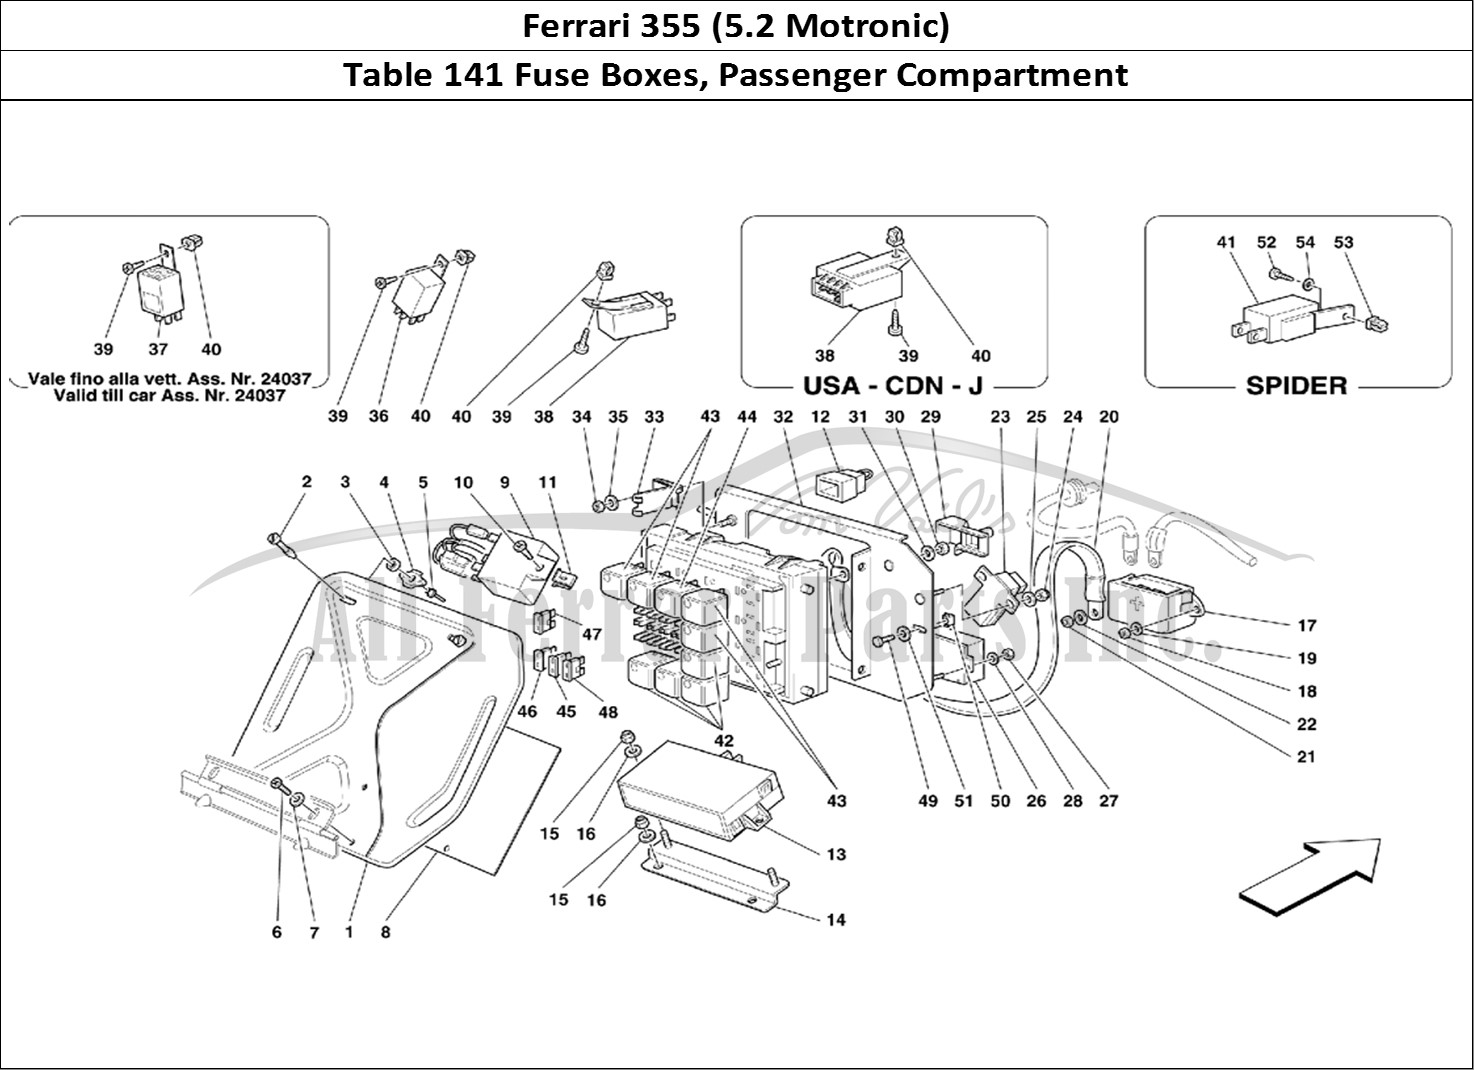 Ferrari Parts Diagram